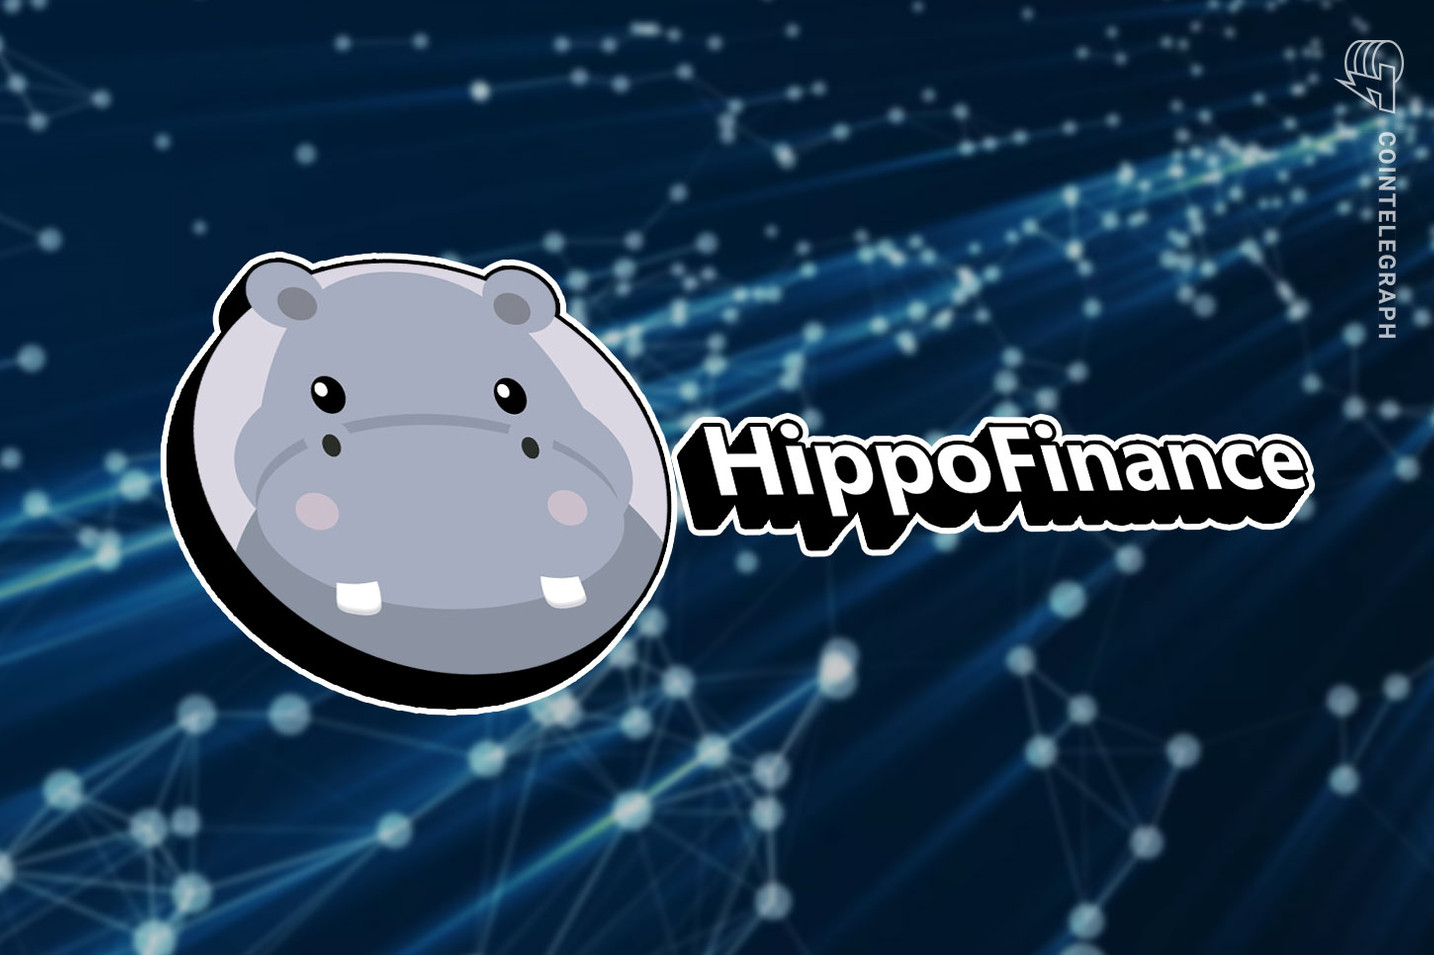 Hippo Finance launches first community governed DeFi hedge fund